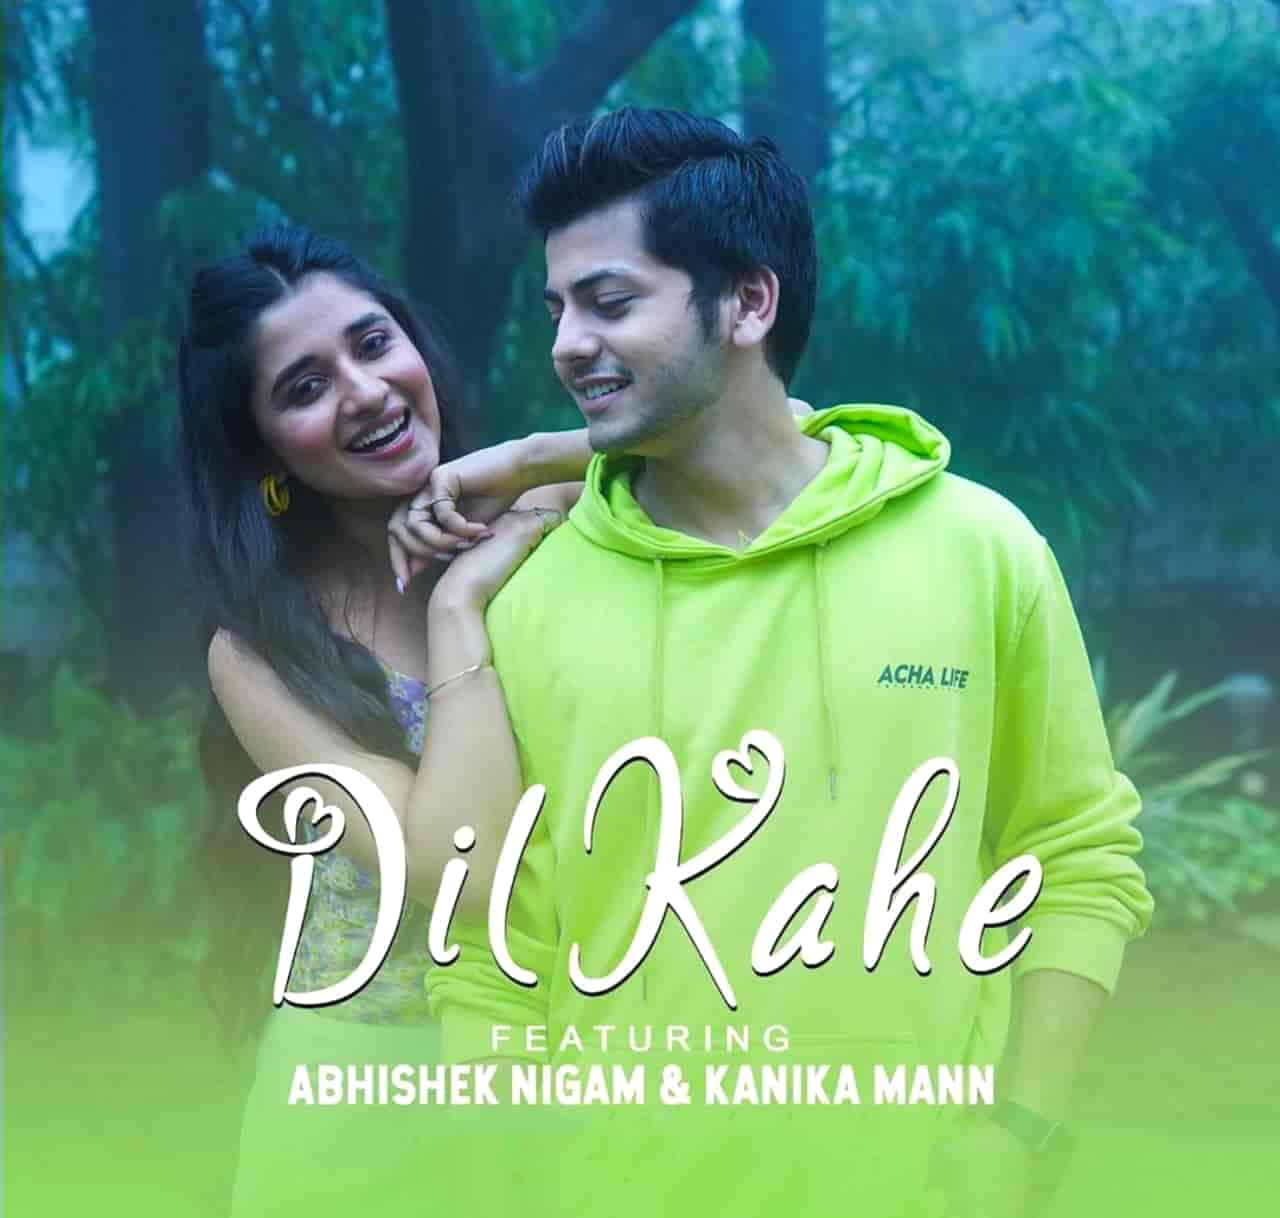 Dil Kahe Hindi Song Image Features Abhishek Nigam and Kanika Man